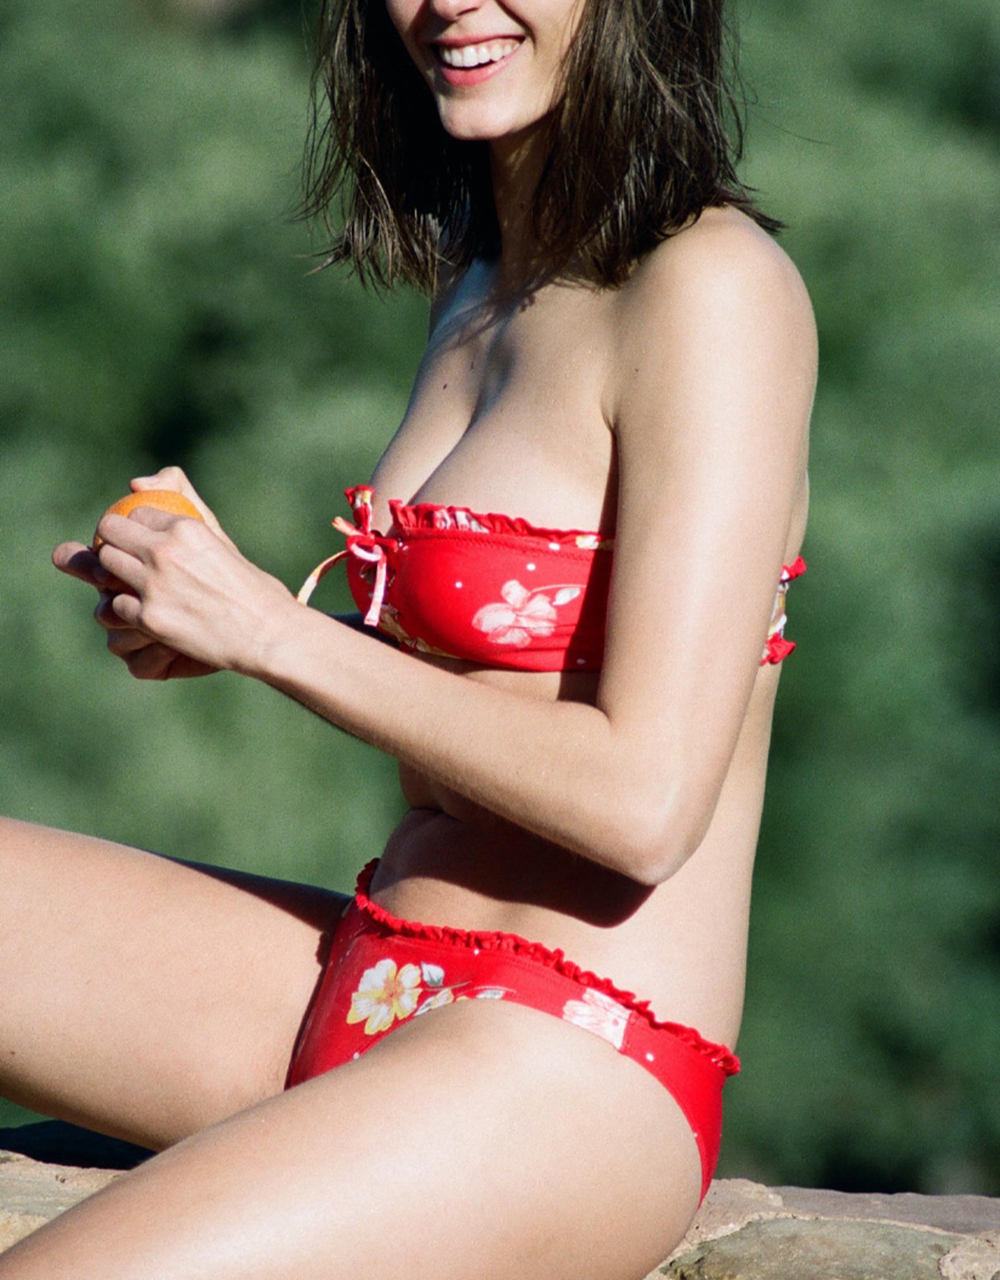 swimsuit bikini top Sixtease Red 35 € Girls In Paris photo 4